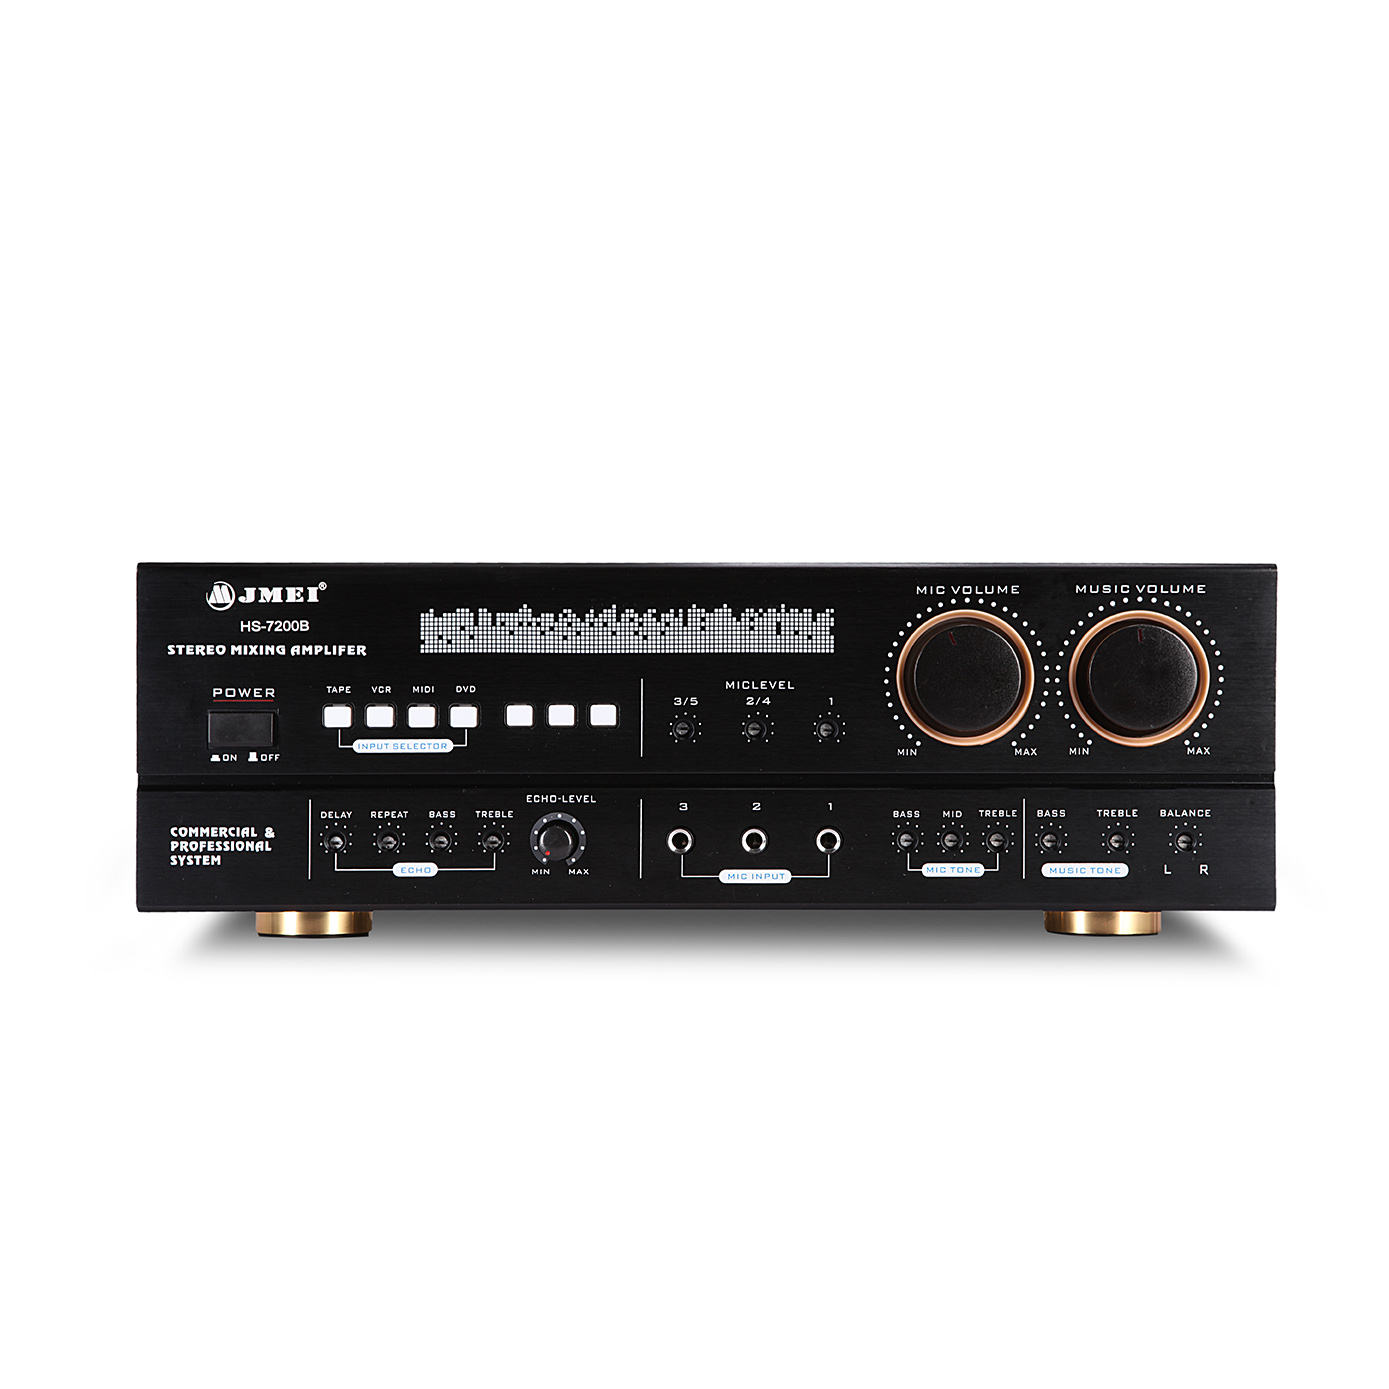 power 2sb688 2sd718 b688 d718 echo mixer for mosque sound system 5.1 amplifier remote kit